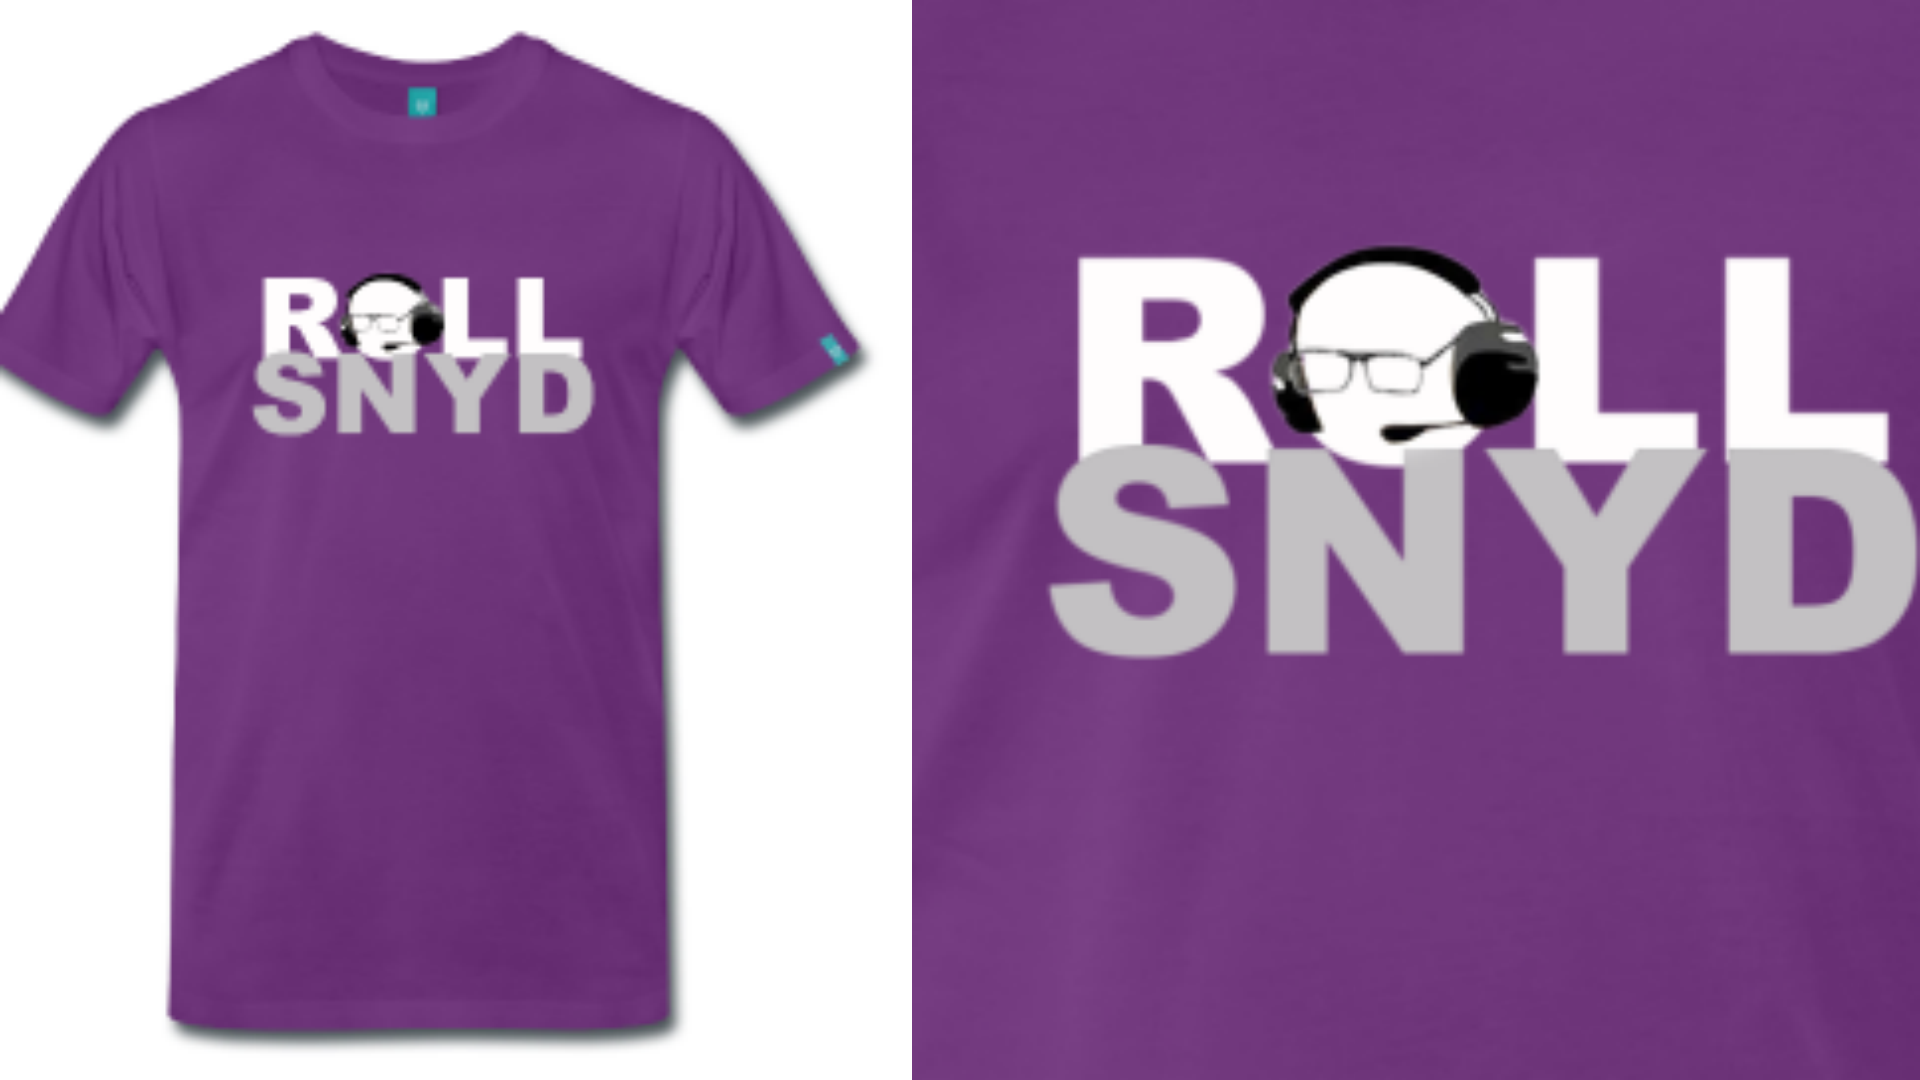 Kansas State has  Roll Snyd  shirts for game against Auburn  963c3a9bafff